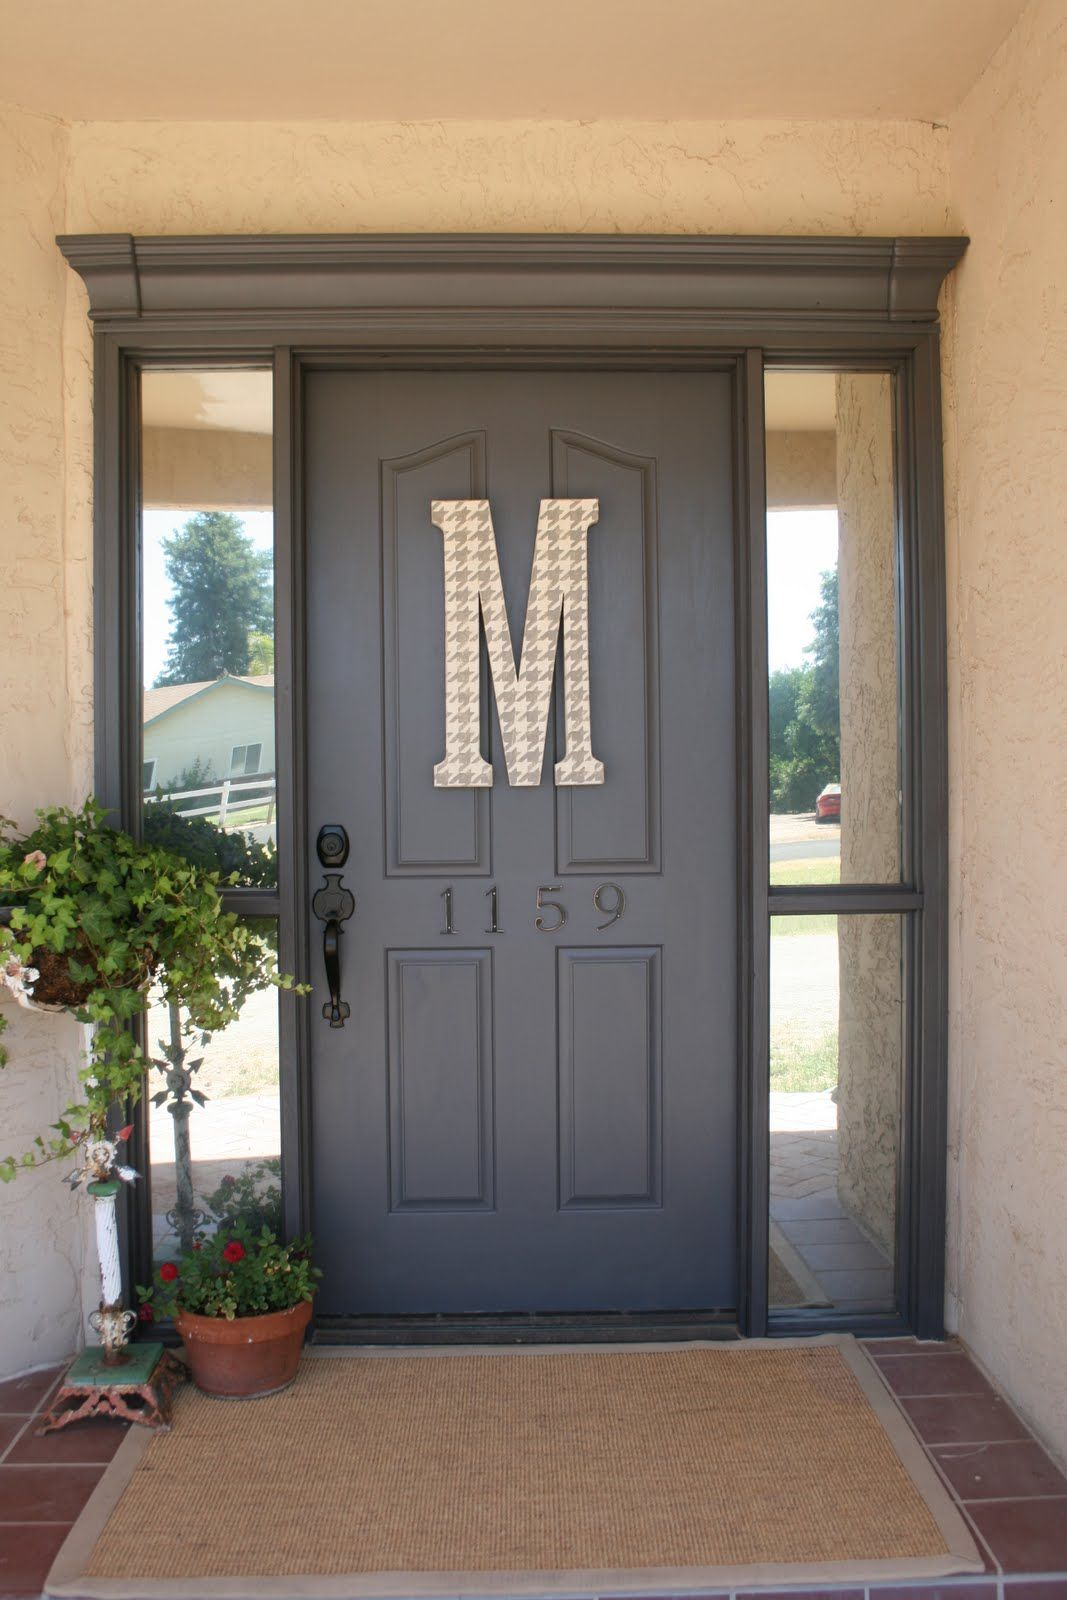 Wonderful A Very Clever Idea To Dress Up The Outside Or Inside Of Your Front Door.